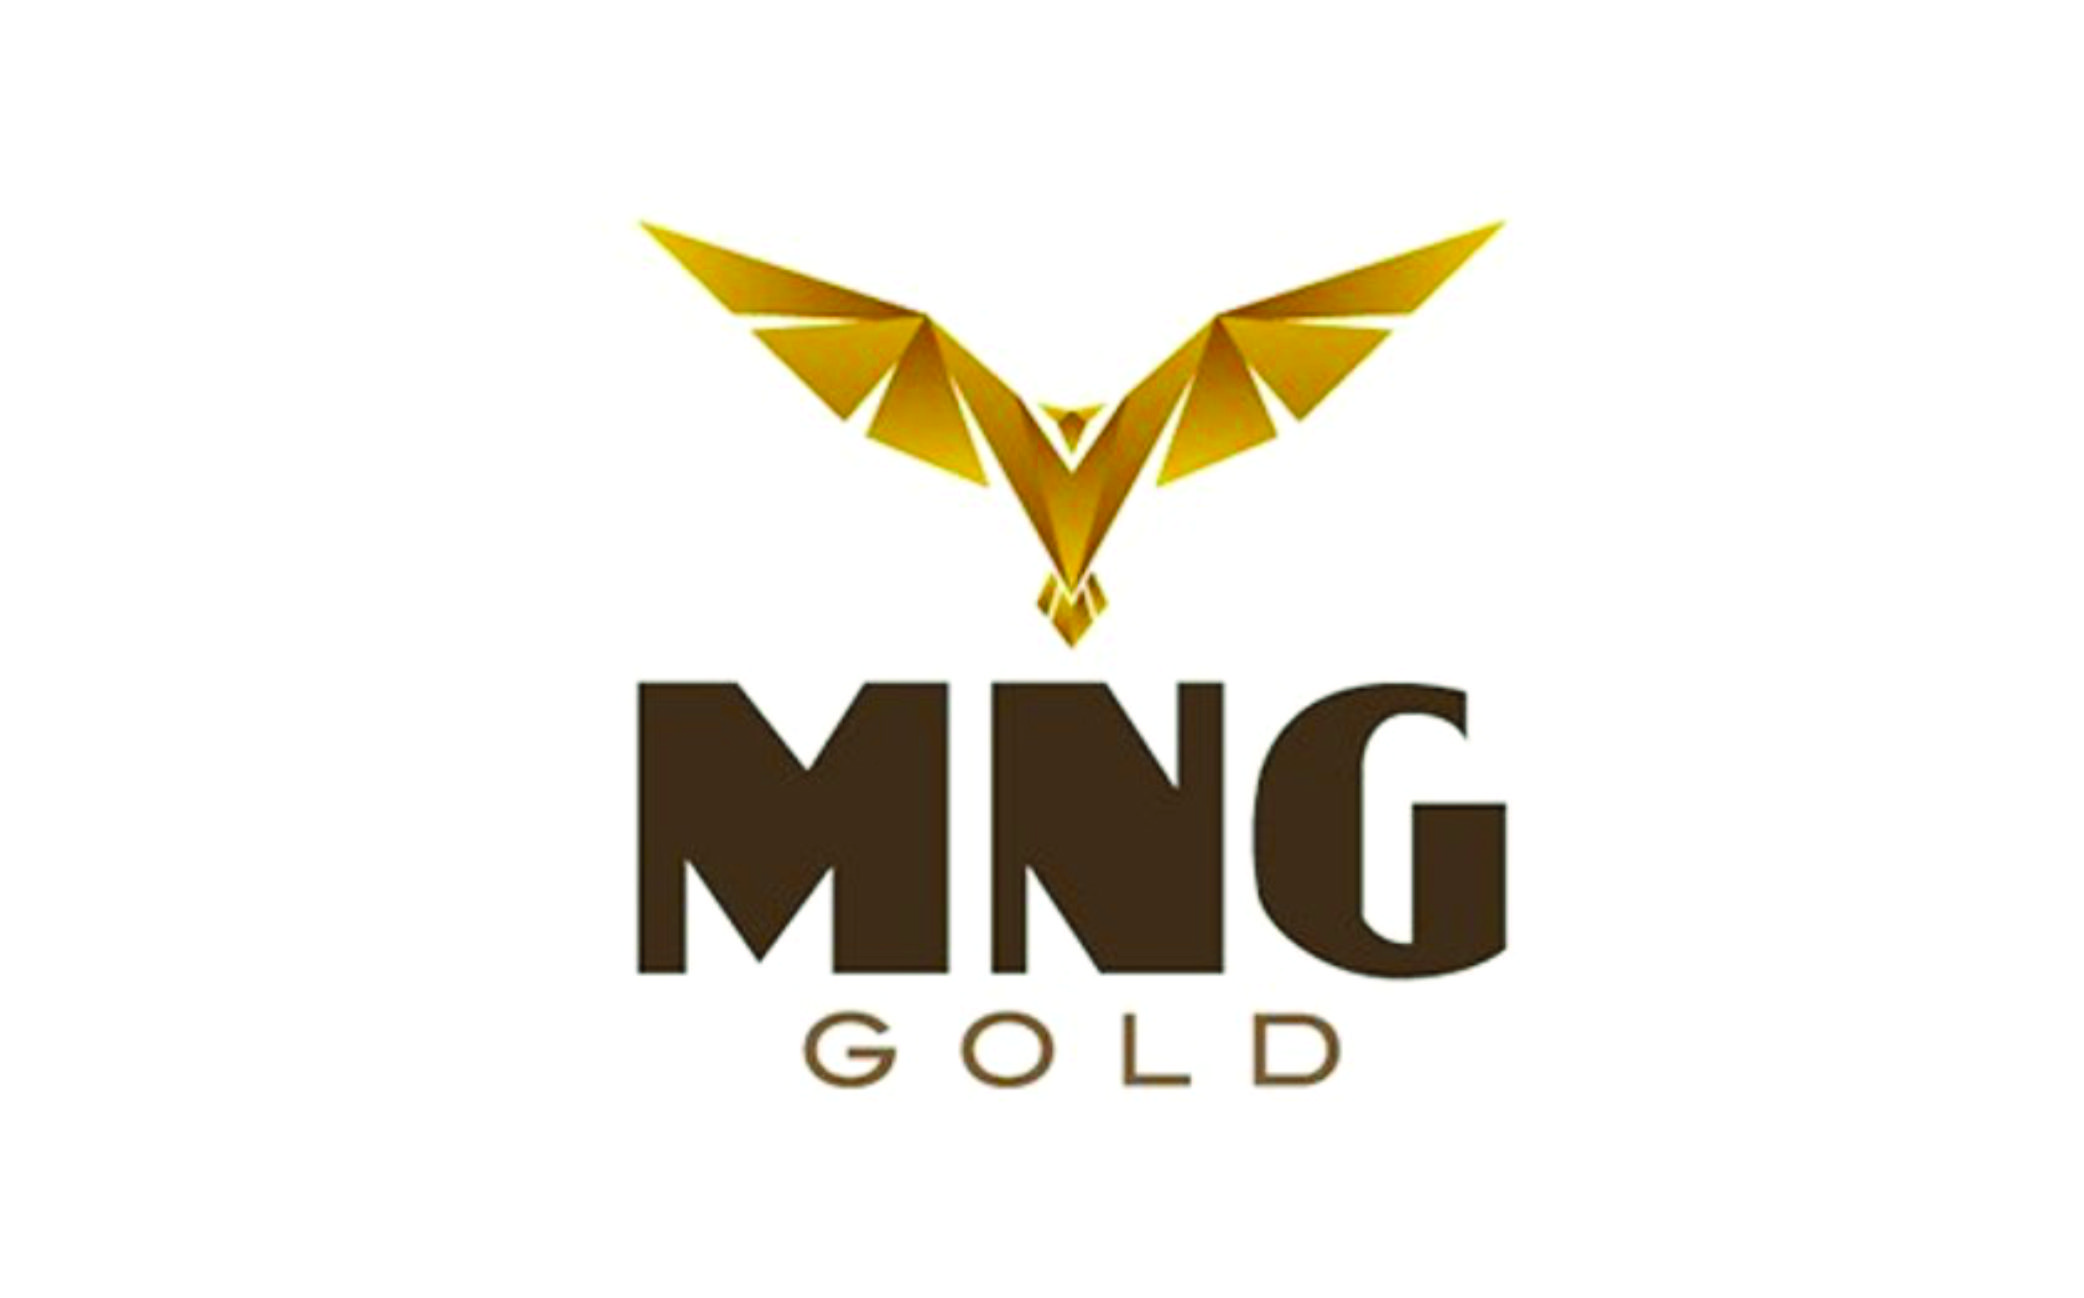 MNG GOLD